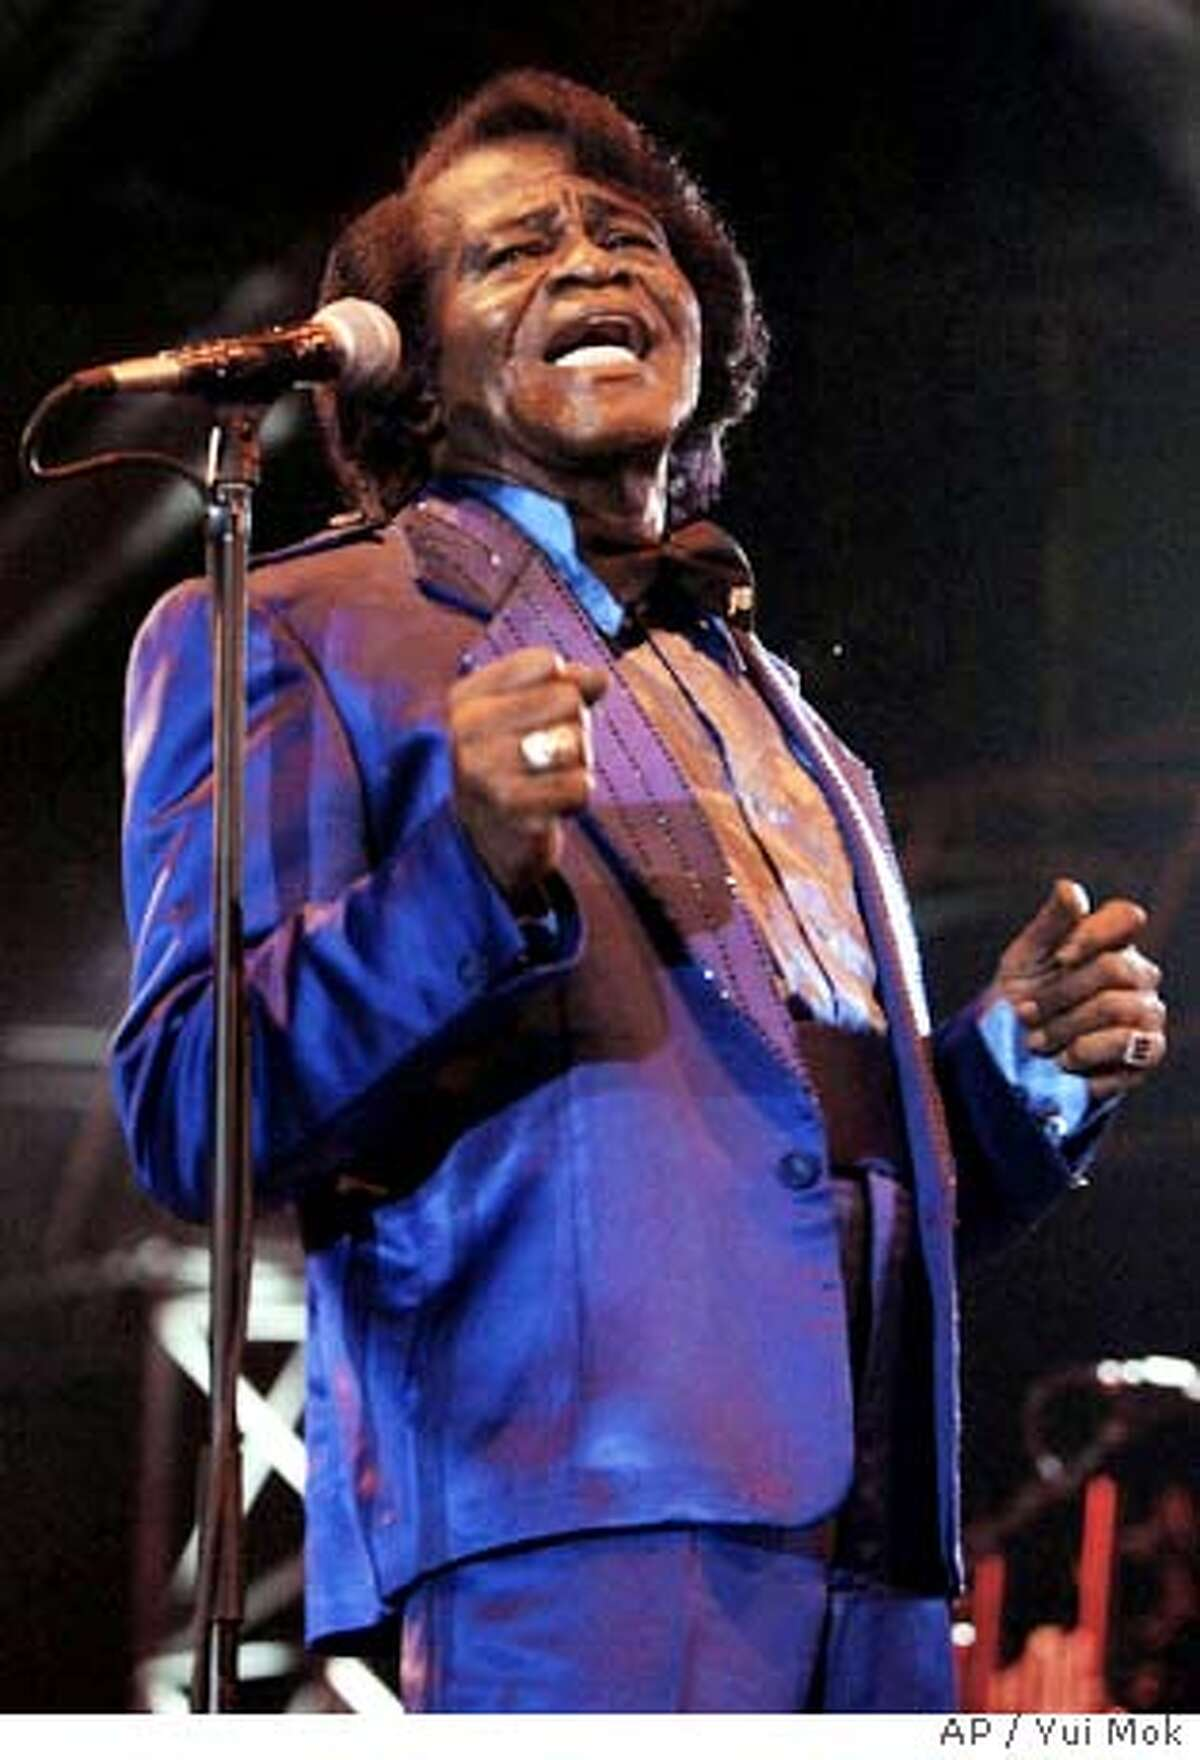 U.S. singer James Brown in concert at the Tower of London, central London. Tuesday July 4, 2006. (AP Photo/Yui Mok, PA) ** UNITED KINGDOM OUT NO ARCHIVE **